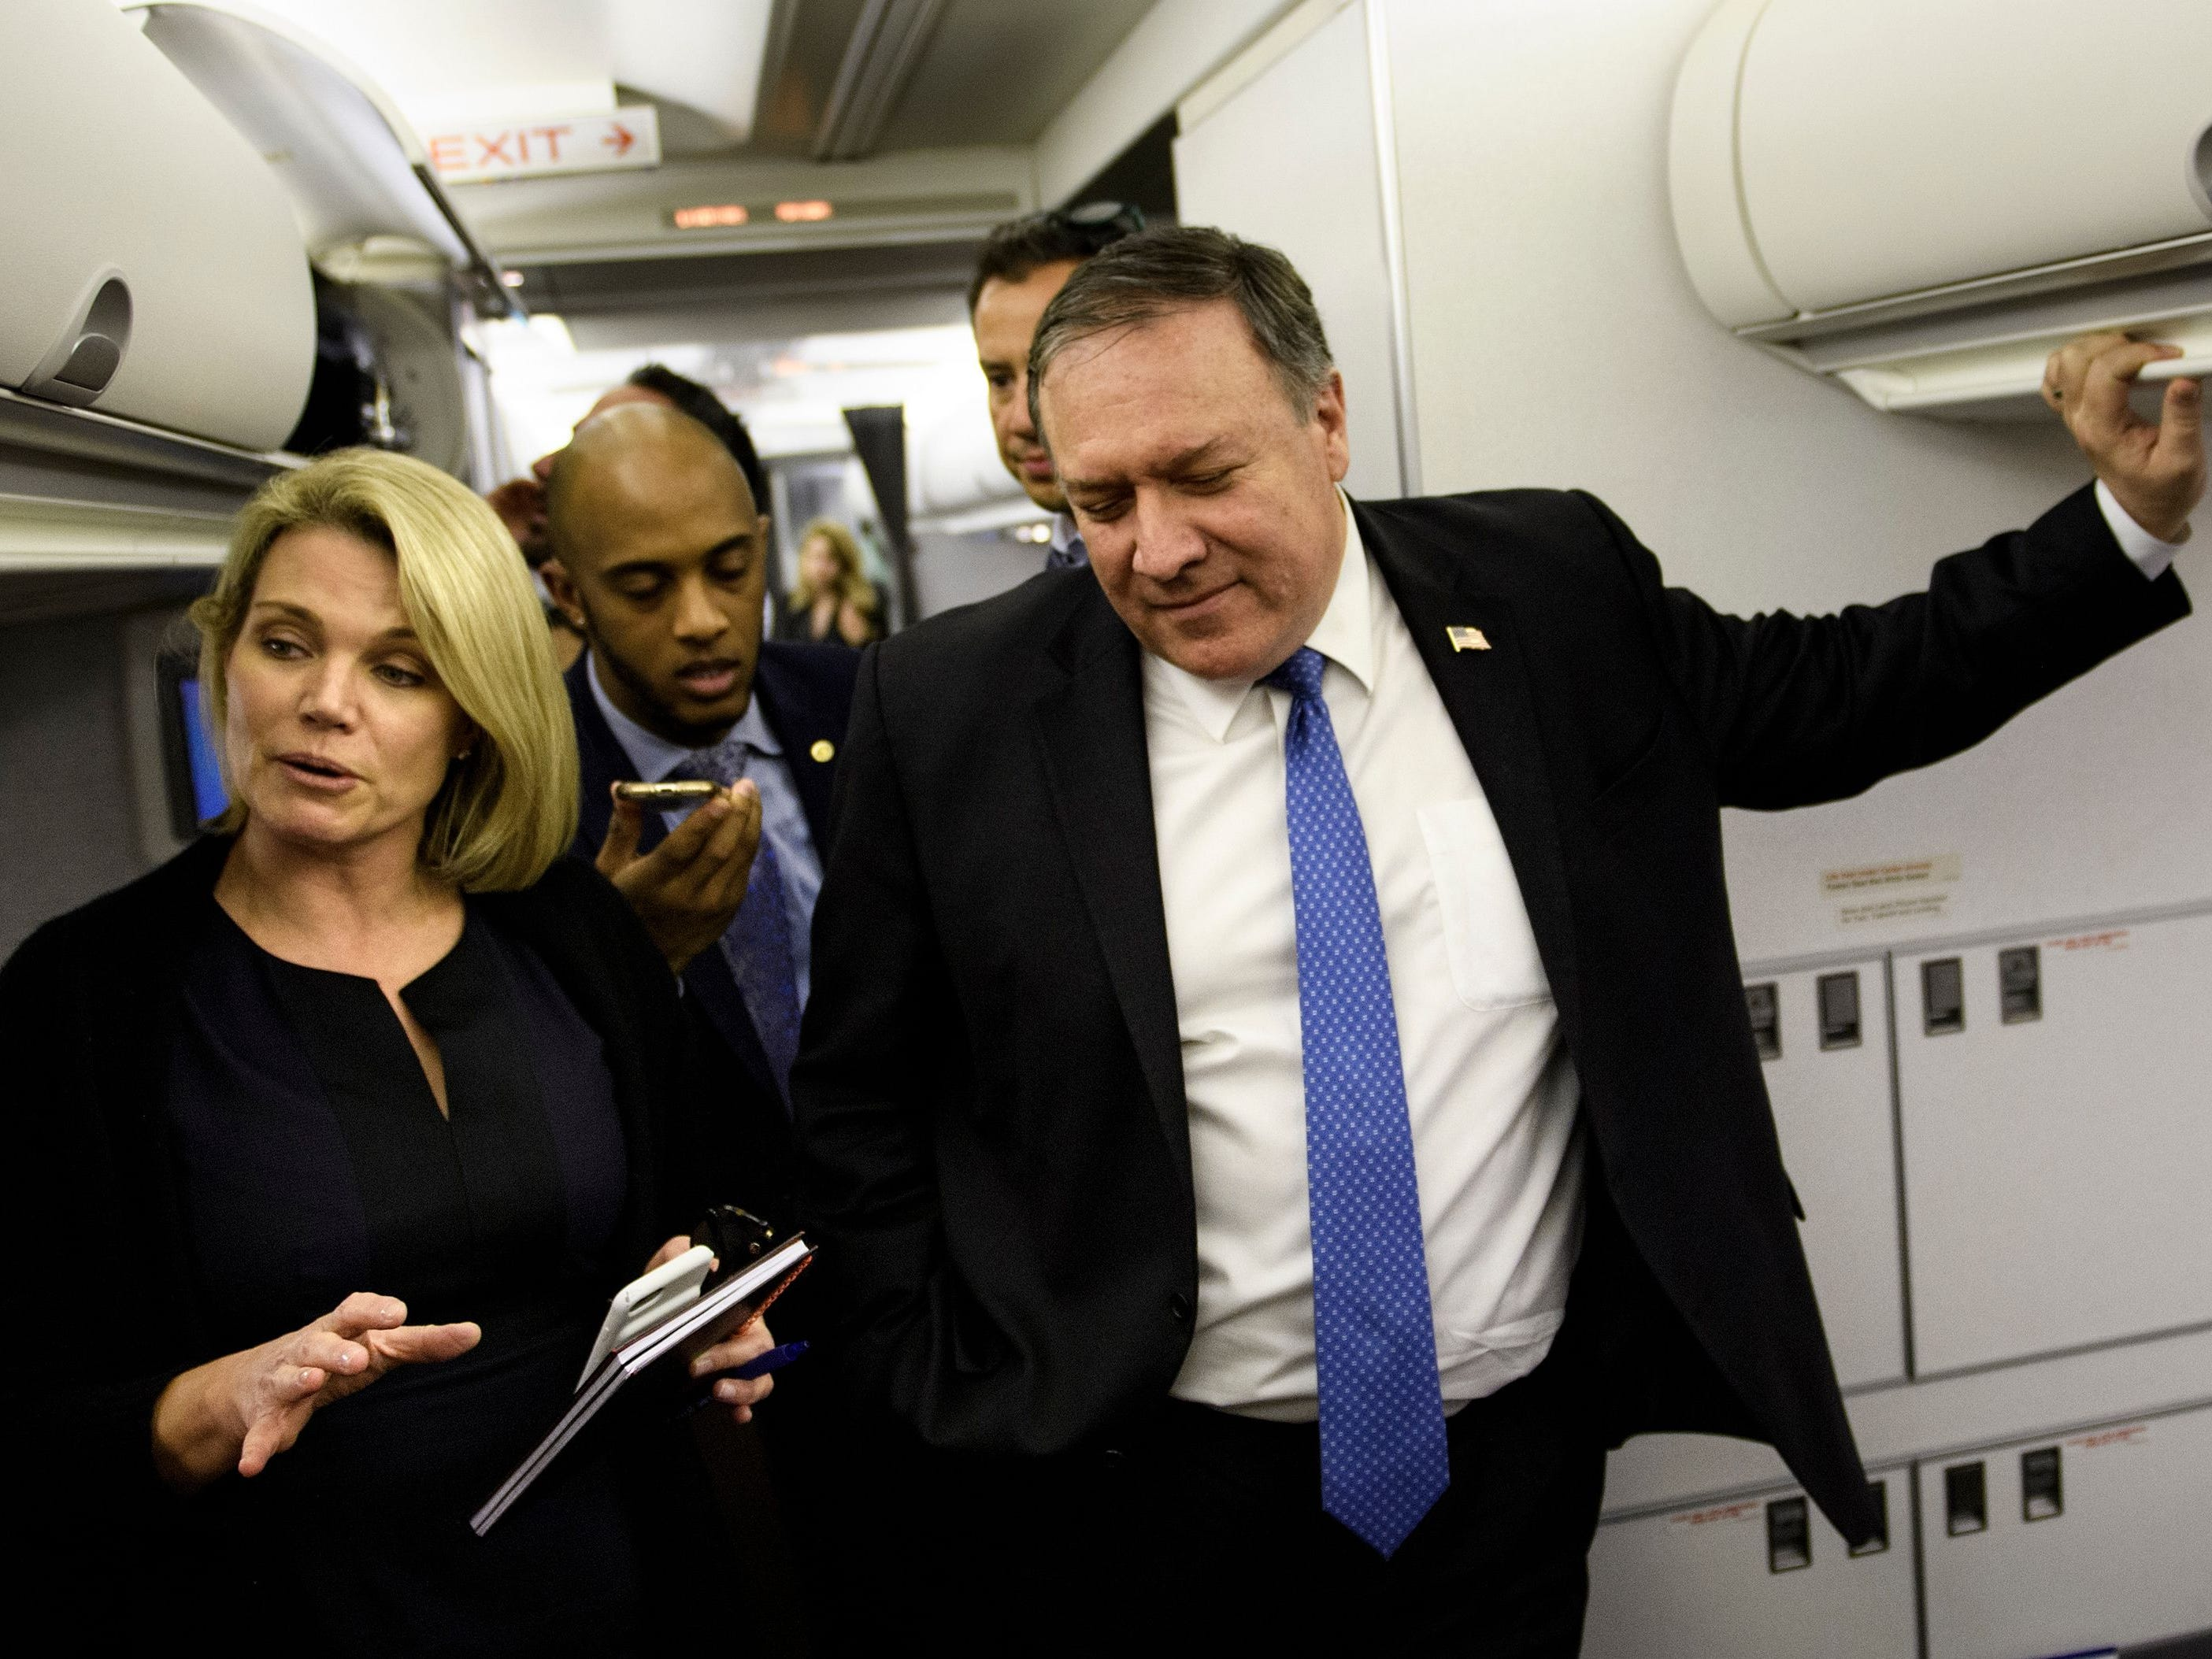 State Department spokesperson Heather Nauert, left, listens while Secretary of State Mike Pompeo speaks with reporters in his plane while flying from Panama to Mexico on Oct. 18, 2018.